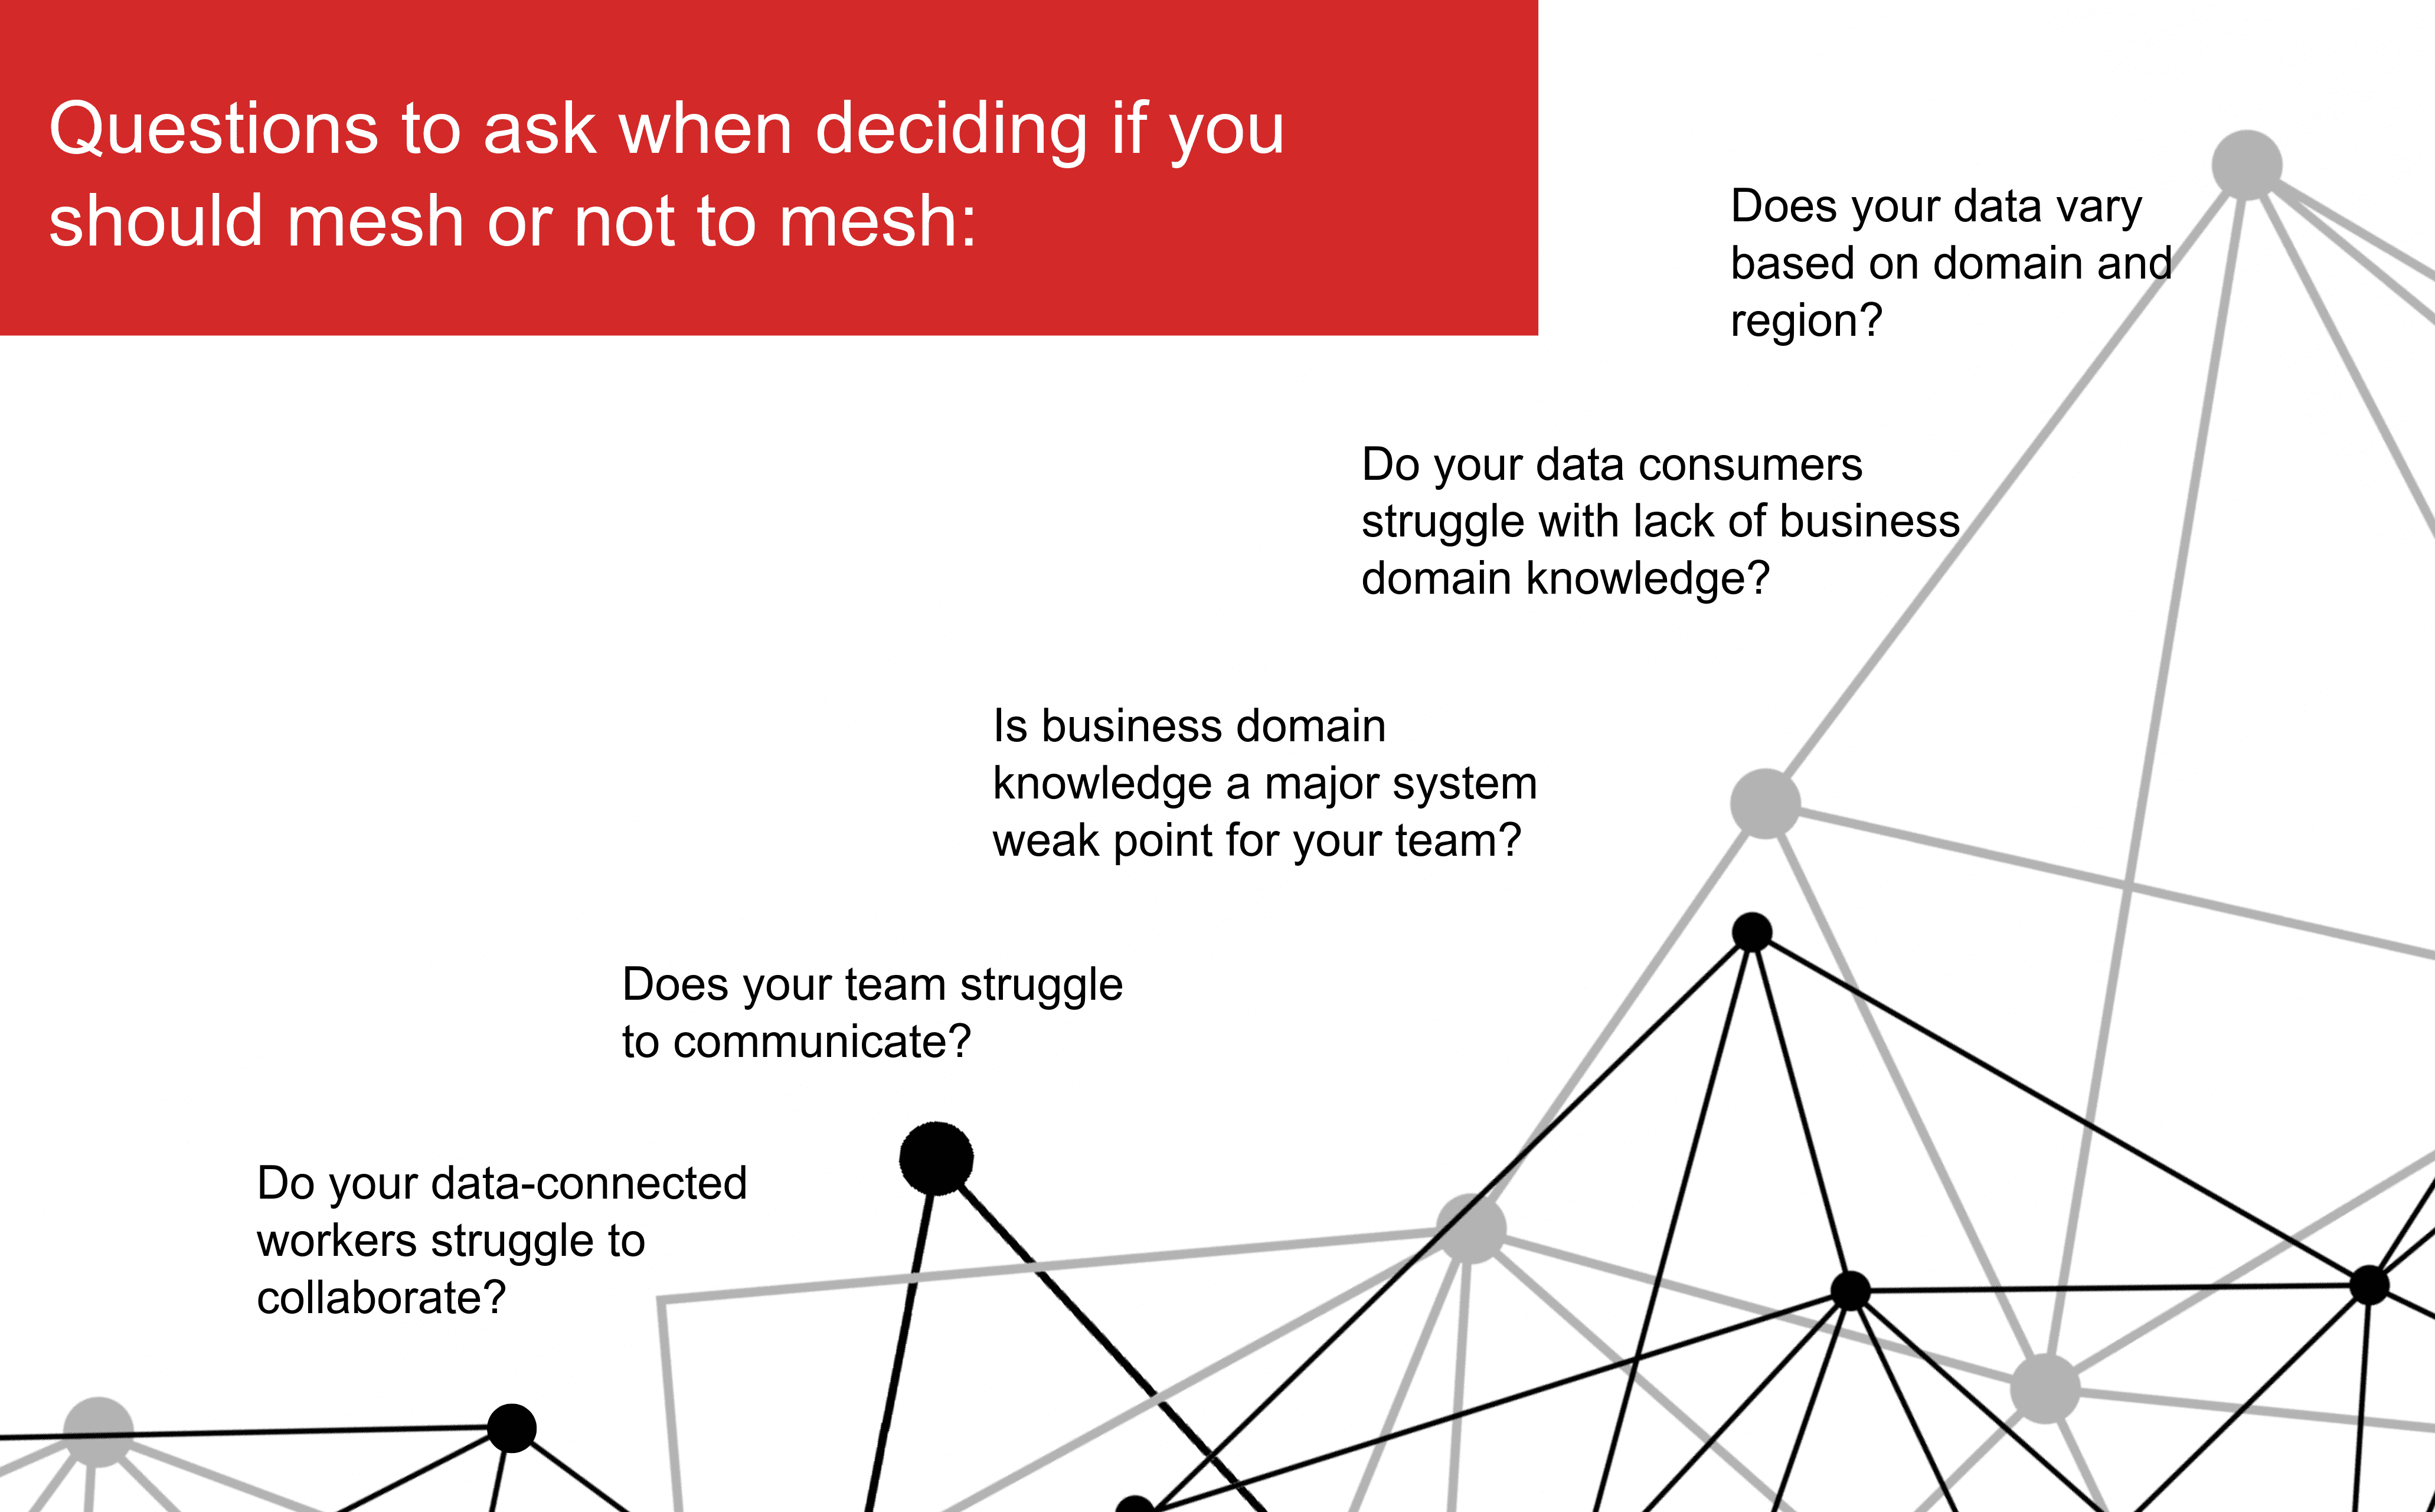 Questions to ask whrn deciding mesh or not to mesh